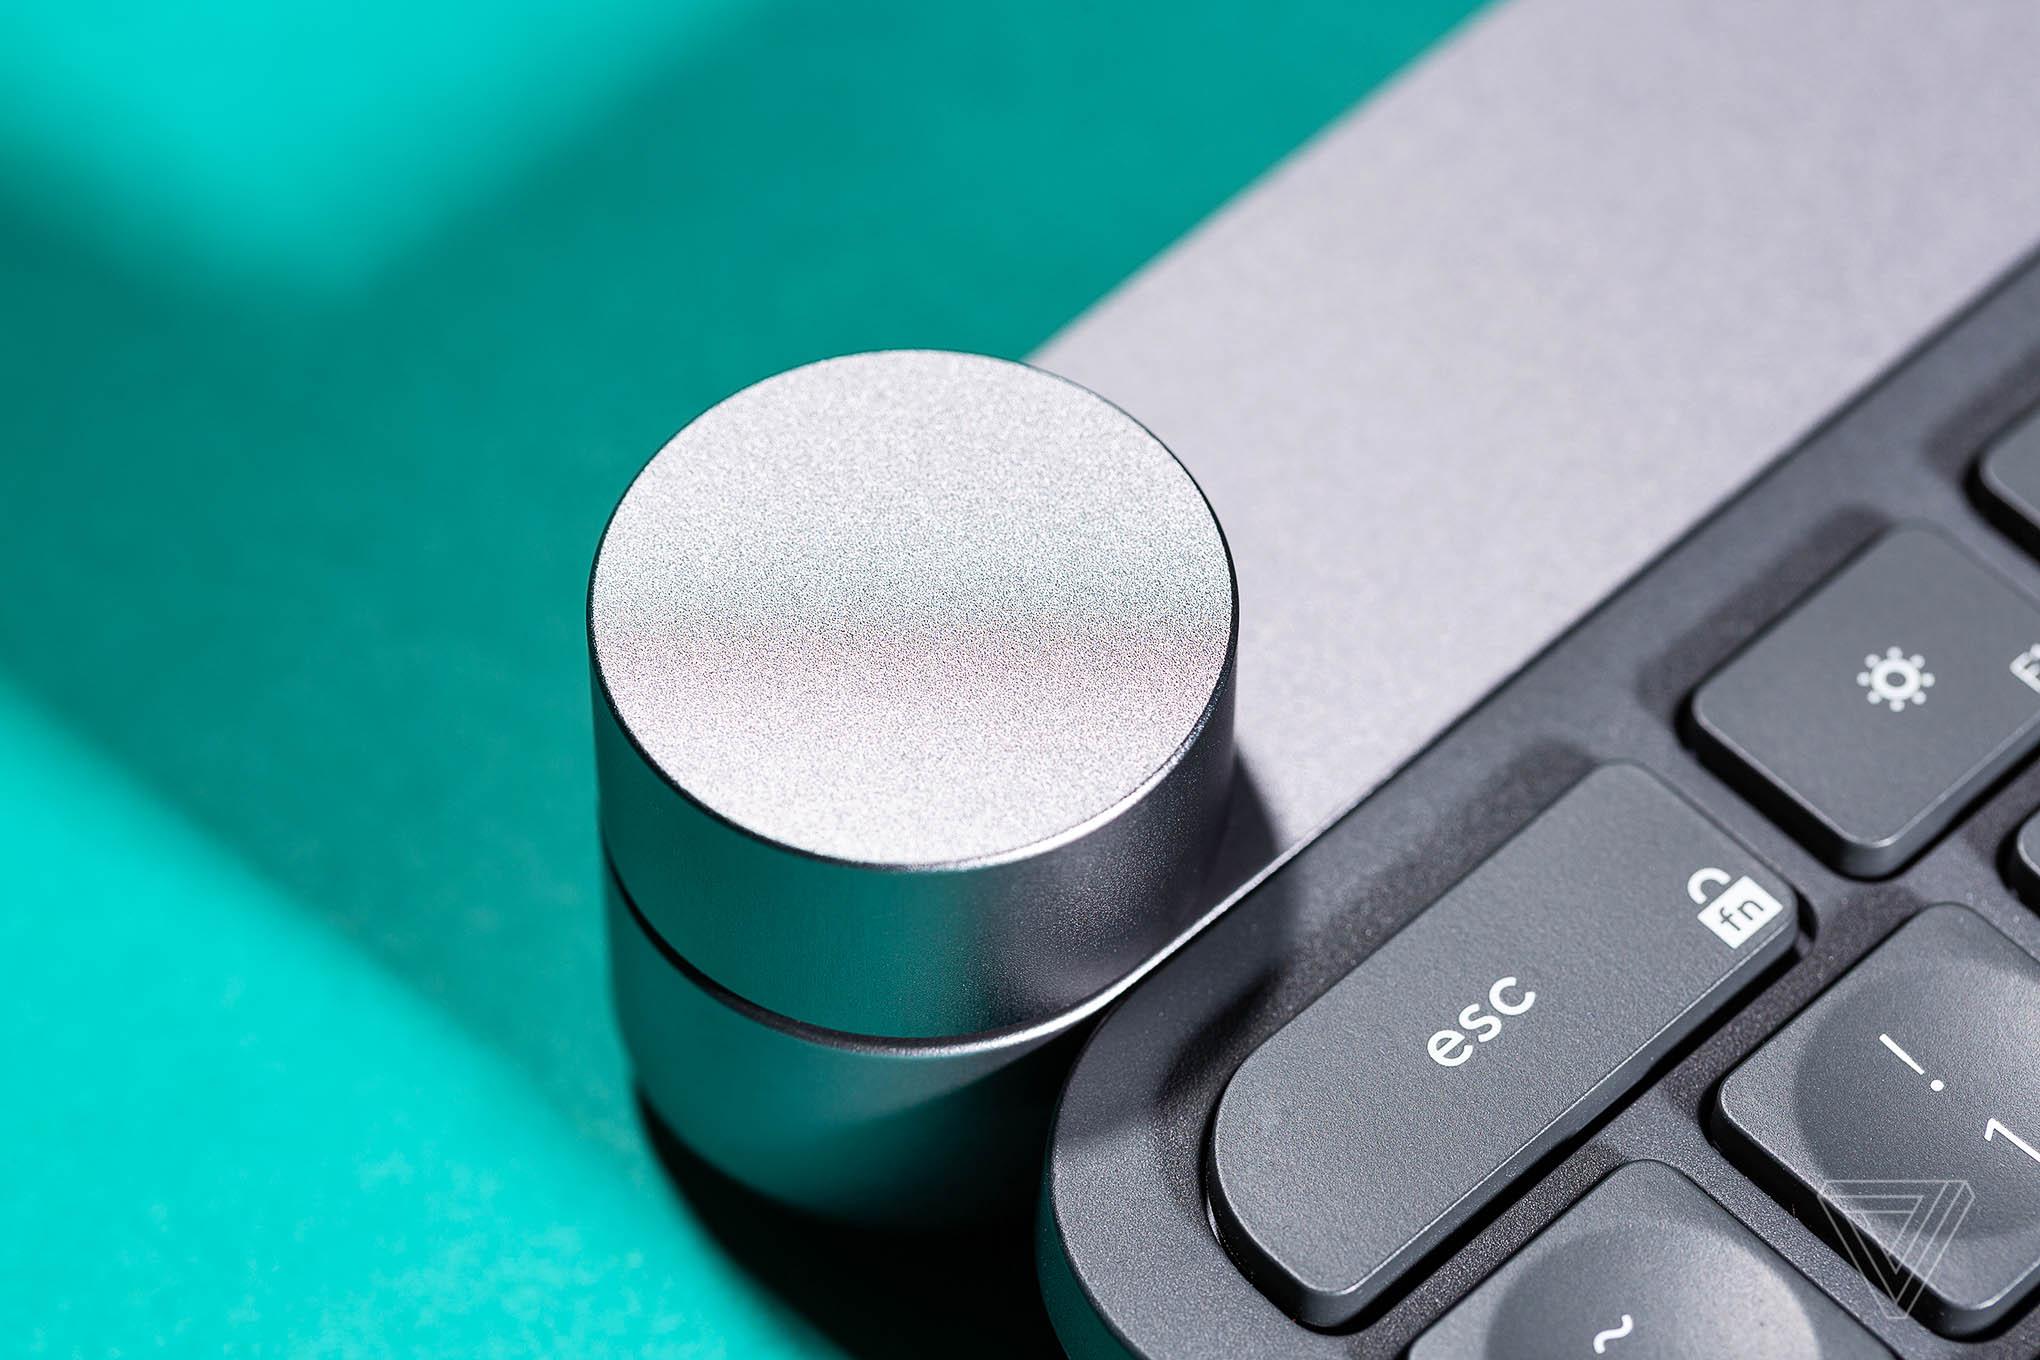 The Logitech Craft keyboard's giant button is a tactile dream - The